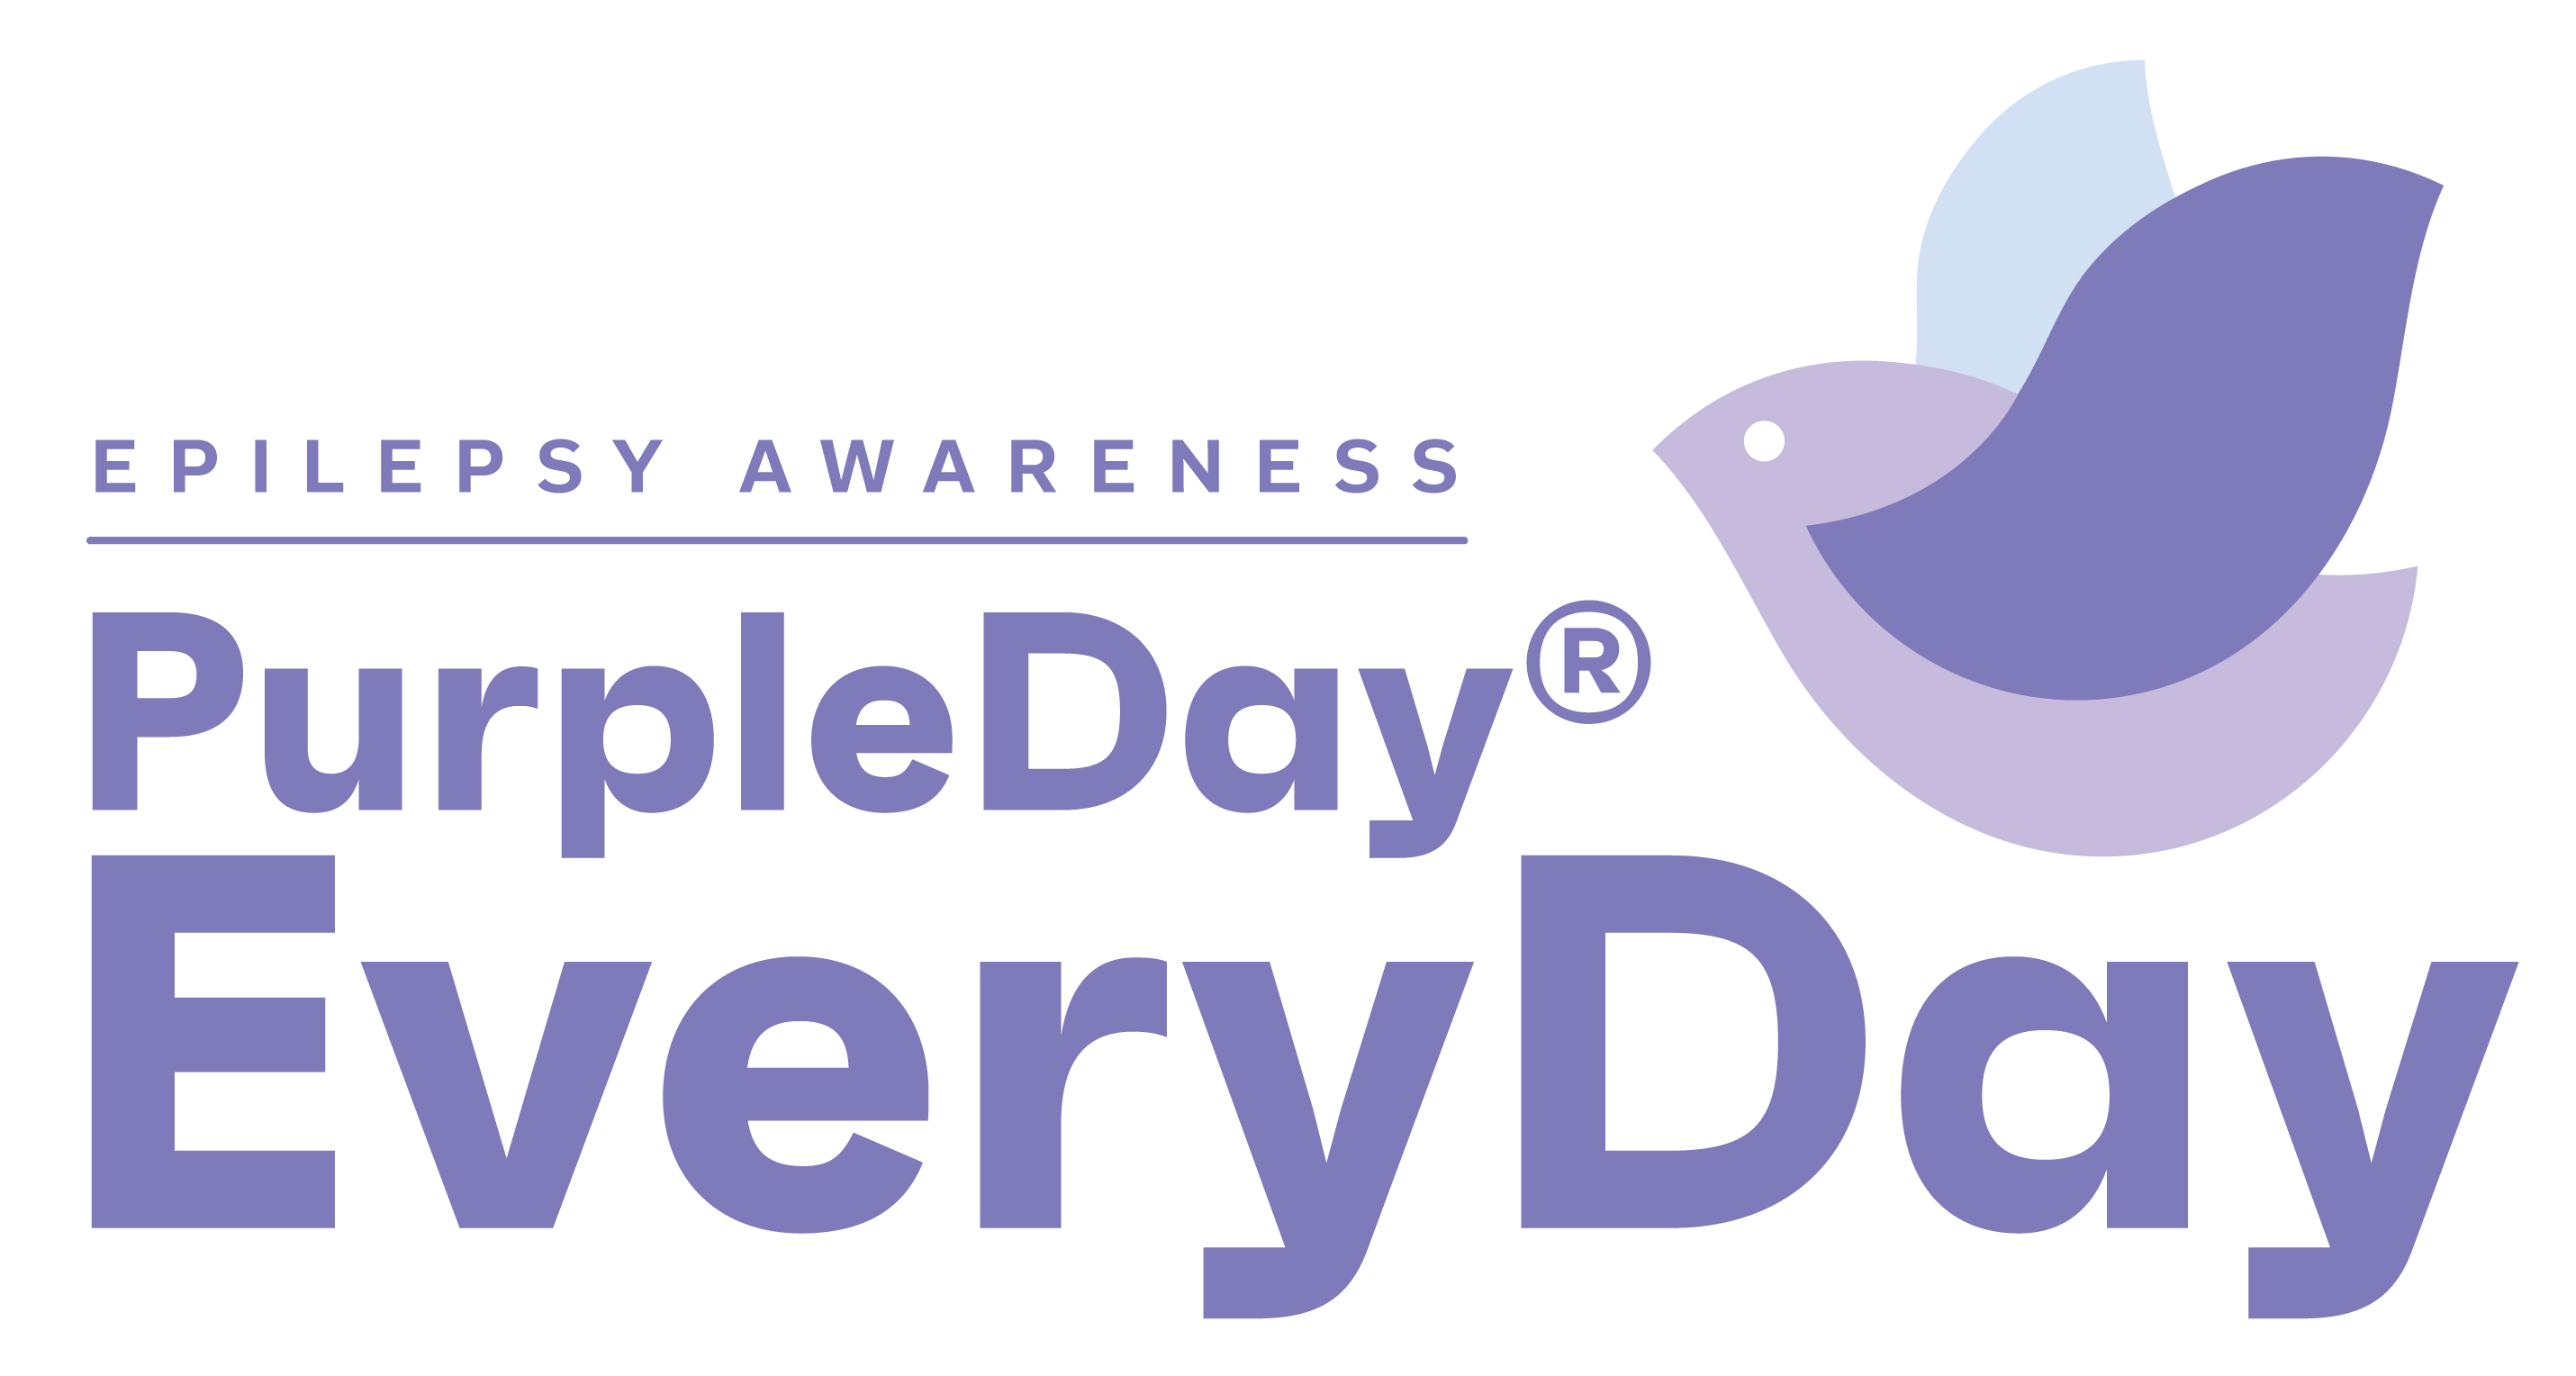 Purple Day, Every Day